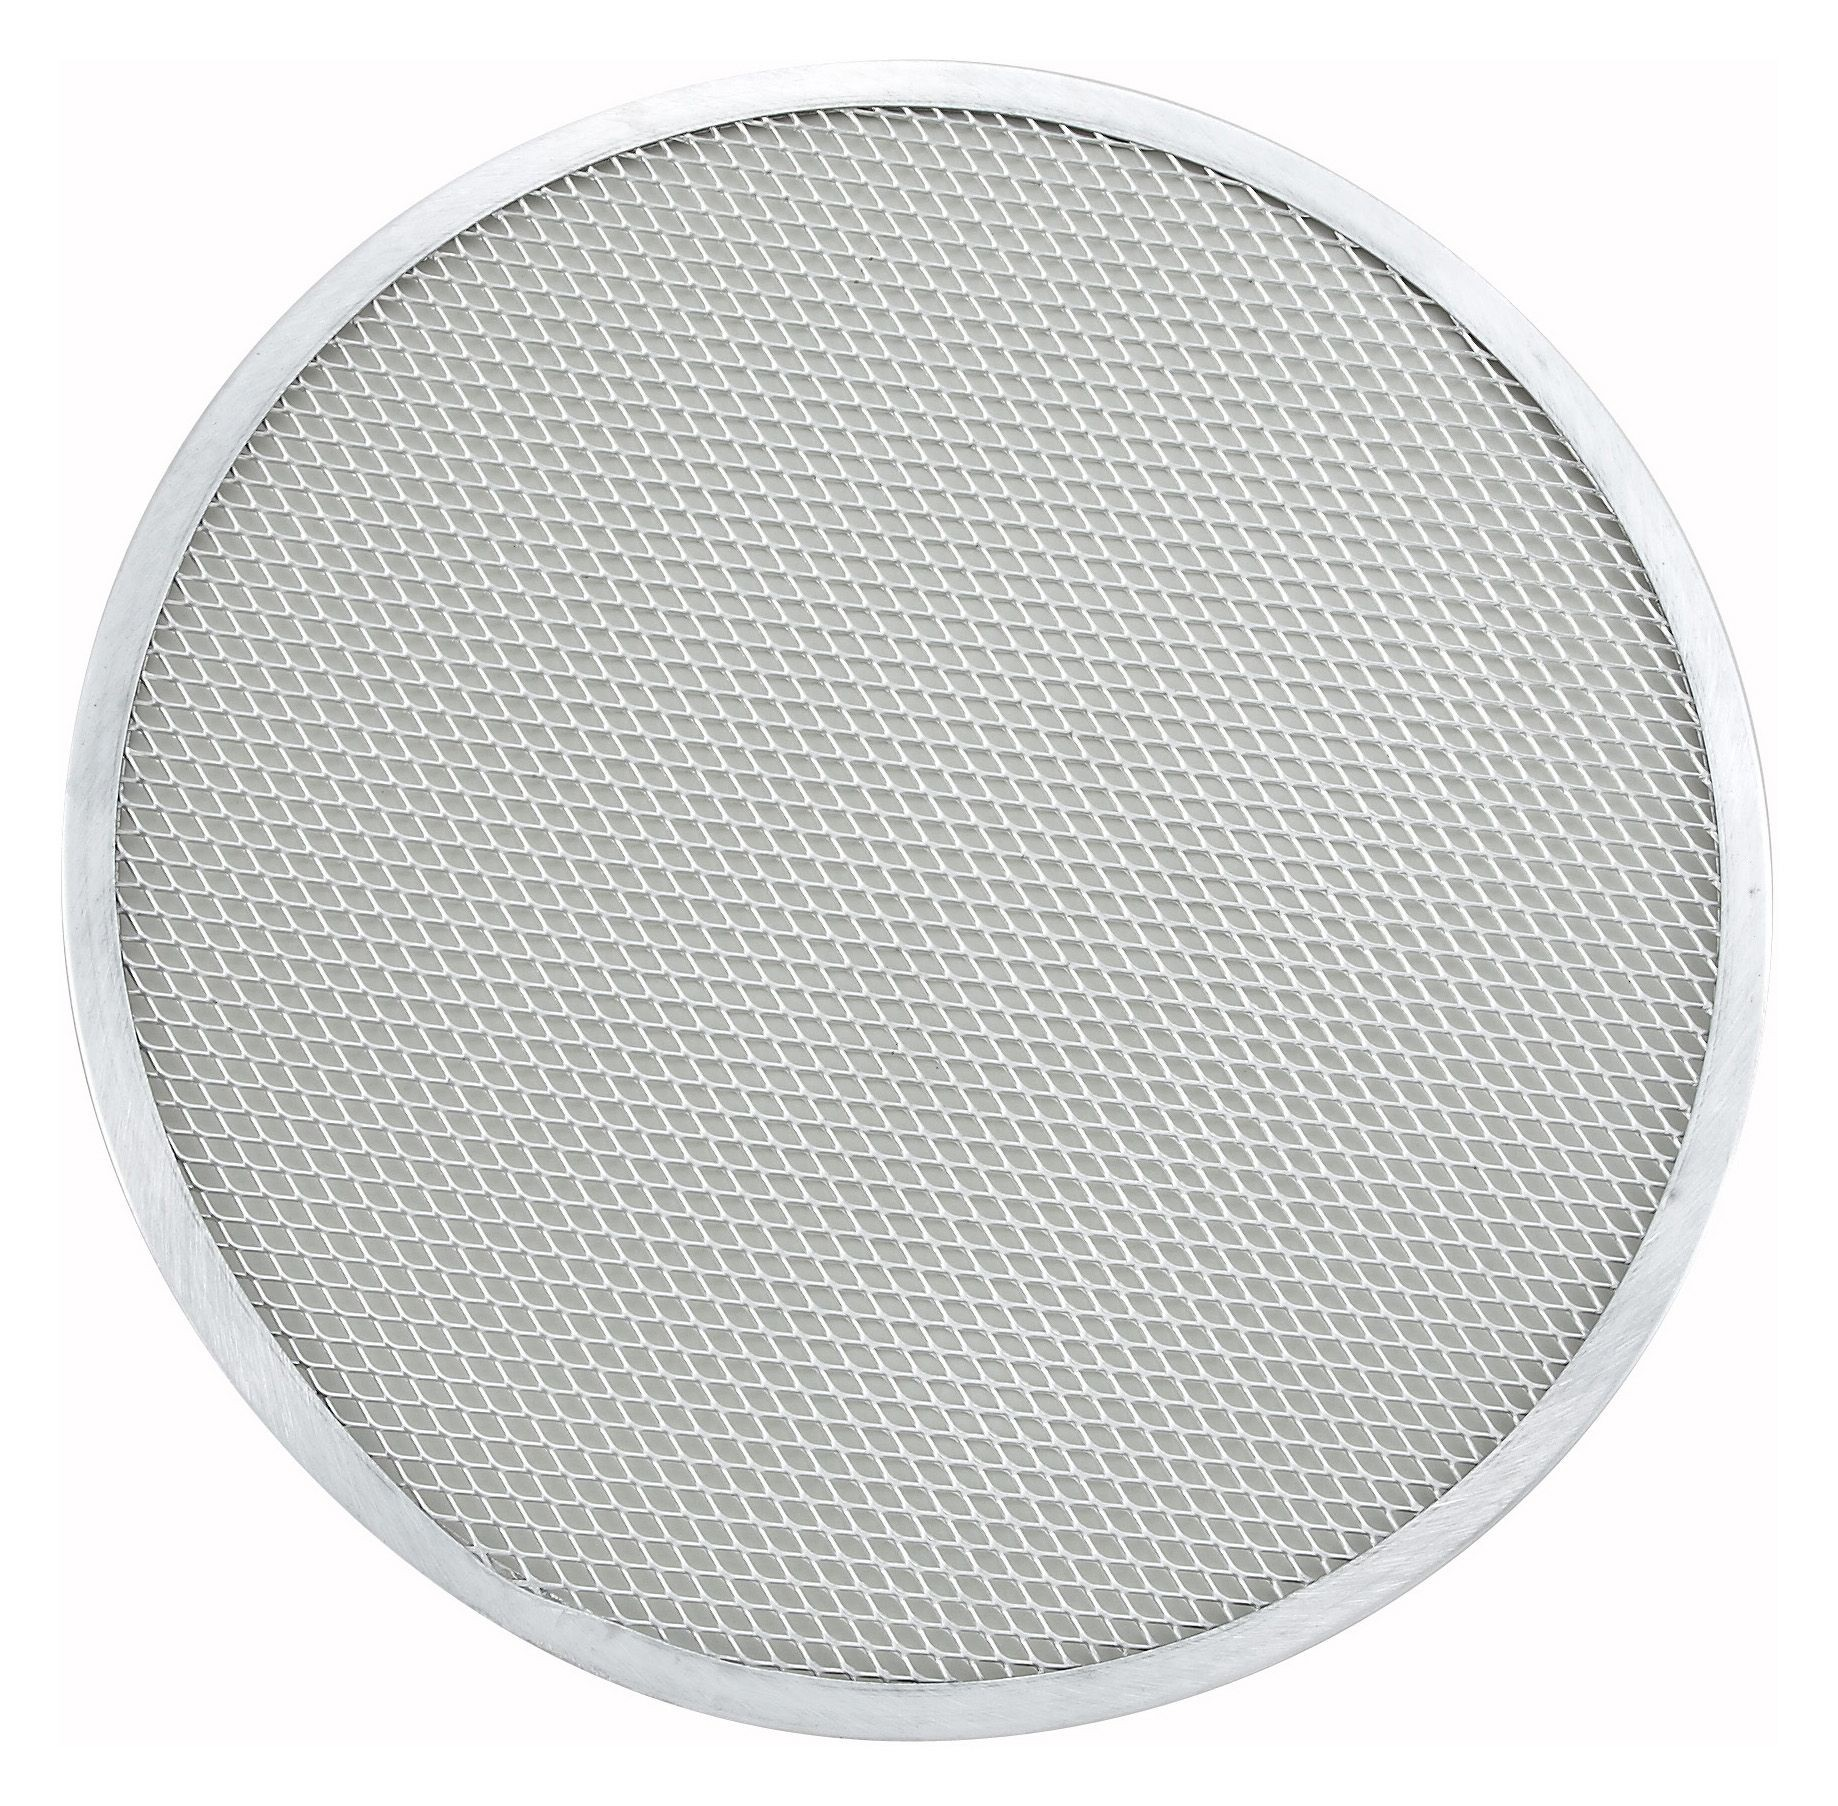 "Winco APZS-12 Seamless Aluminum Pizza Screen 12"" Dia."